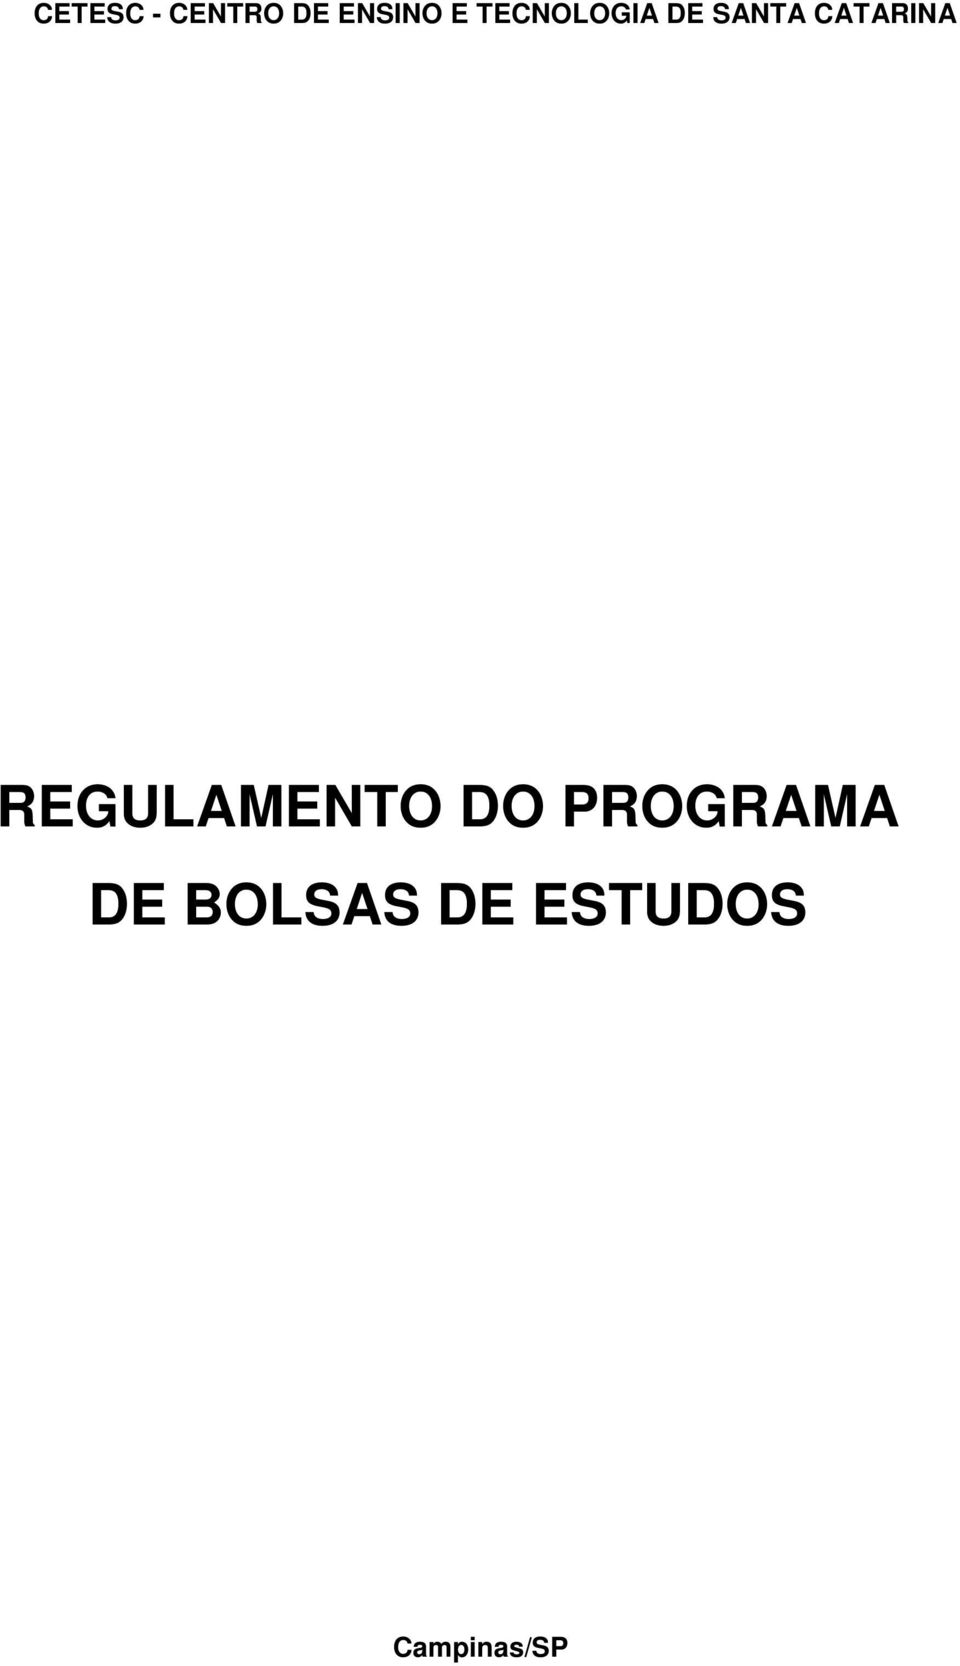 REGULAMENTO DO PROGRAMA DE